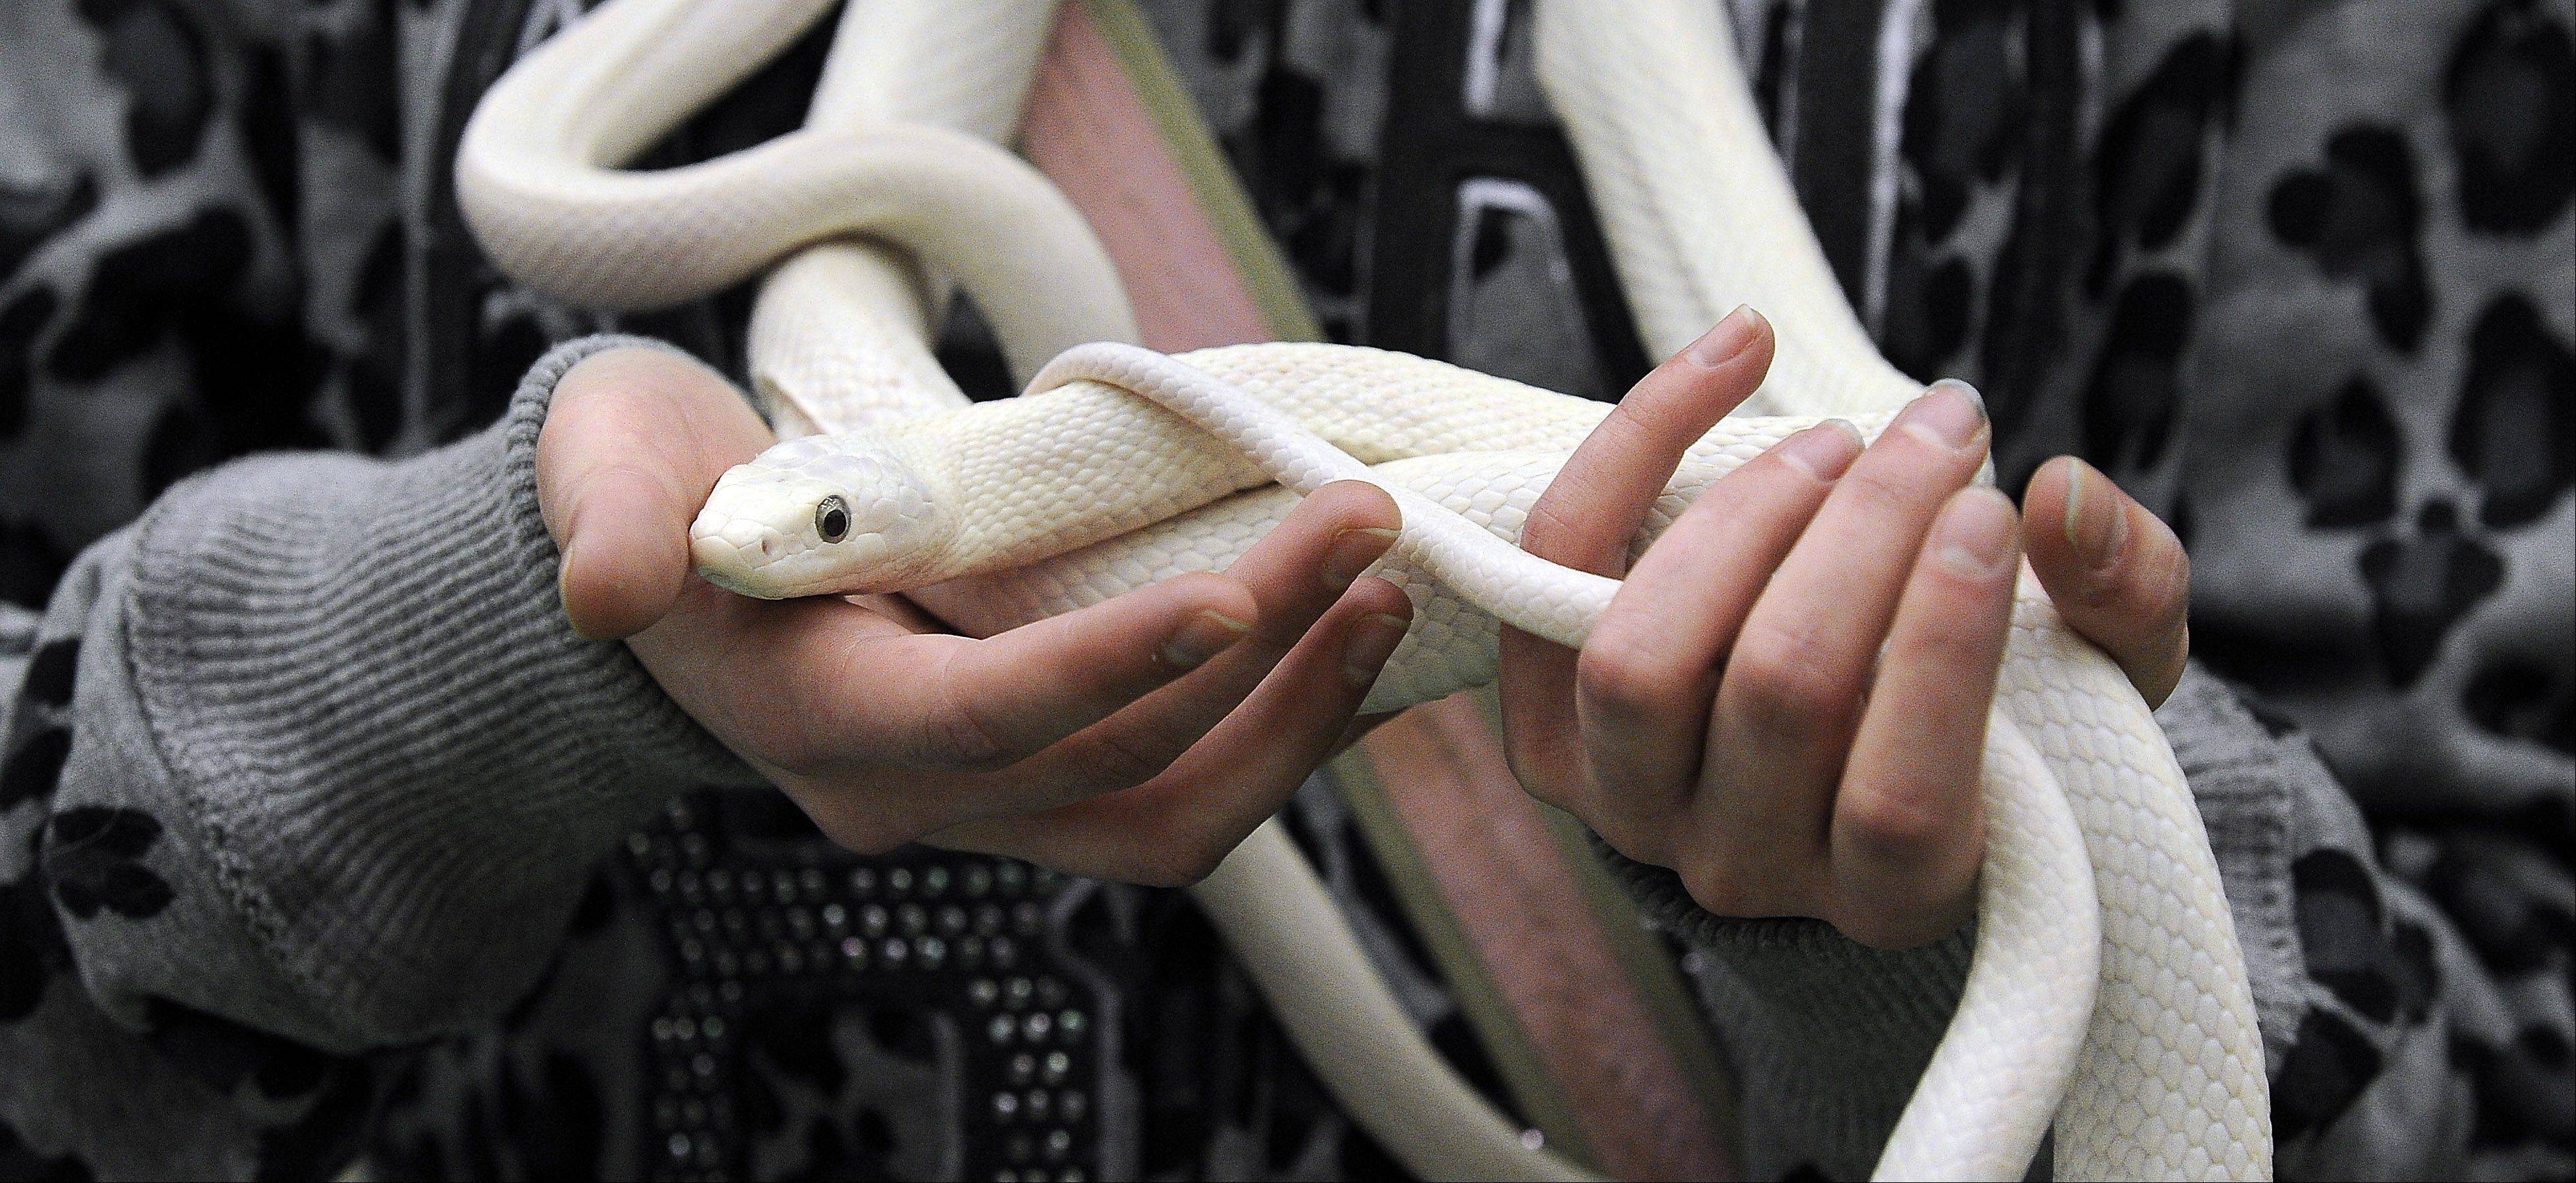 Ashleigh Roese,14, of Schaumburg holds a White Texan Rat snake.